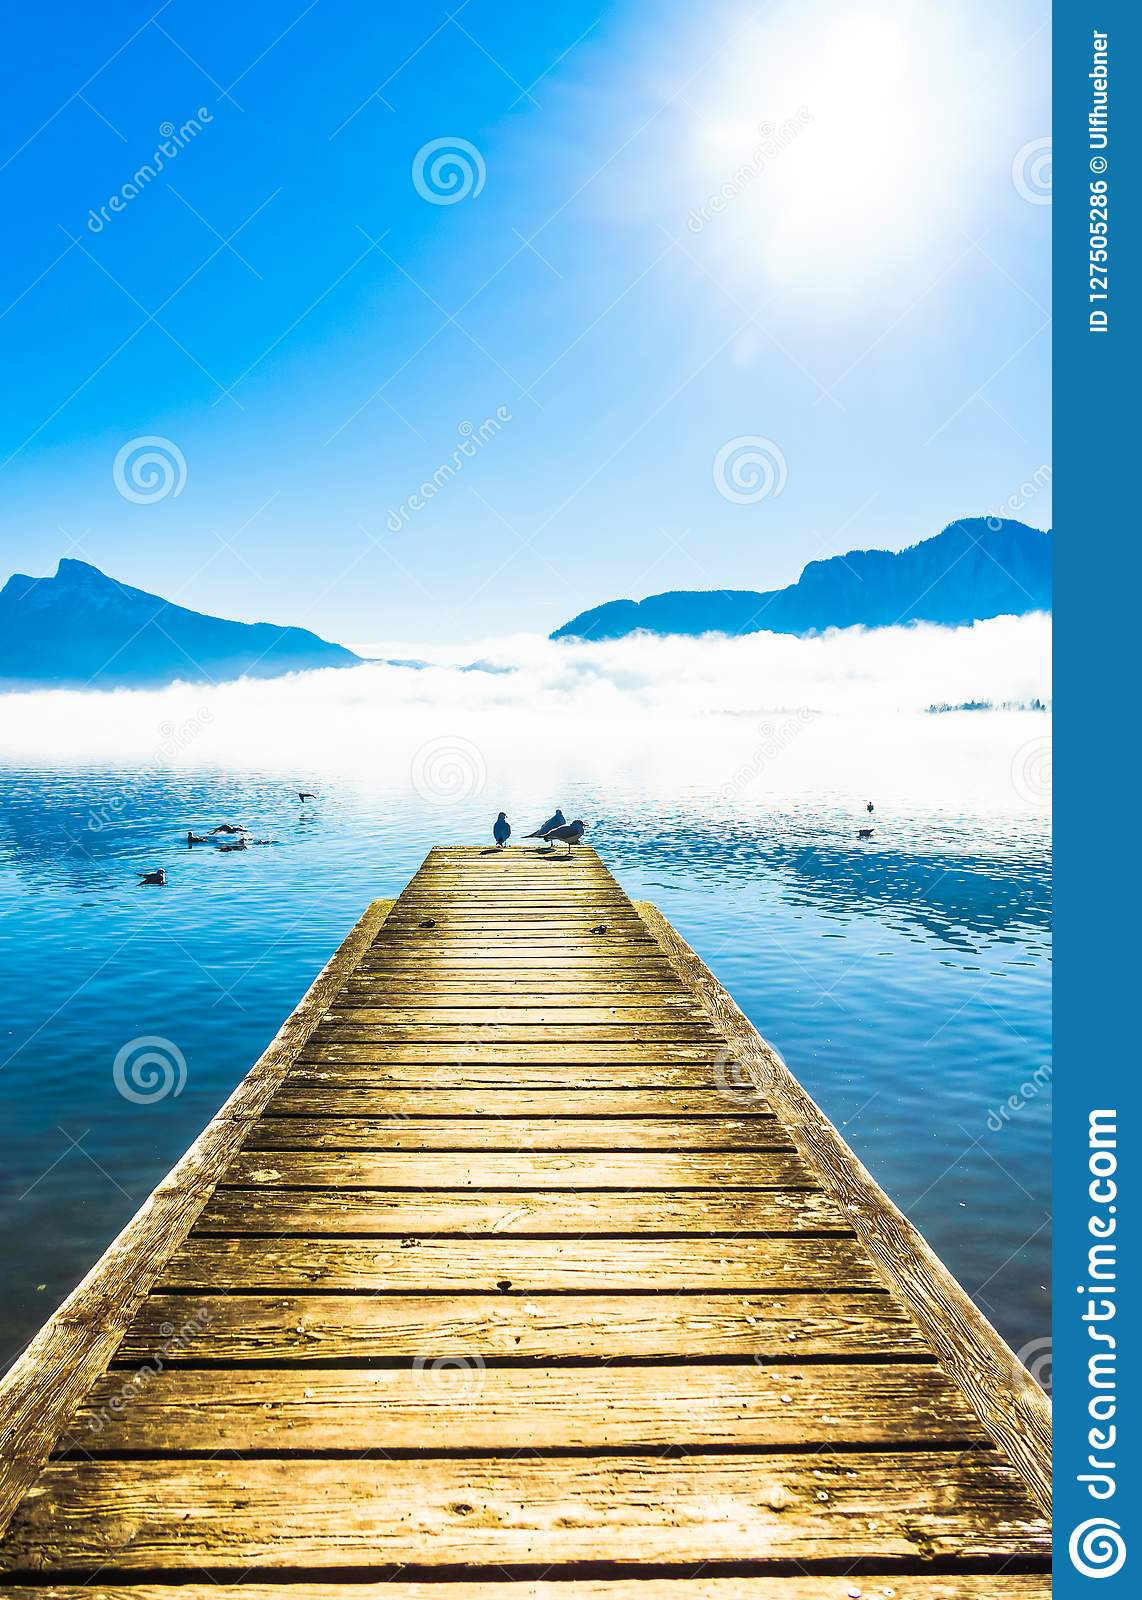 Foggy mountain landscape with seagulls on Pier of lake Mondsee i